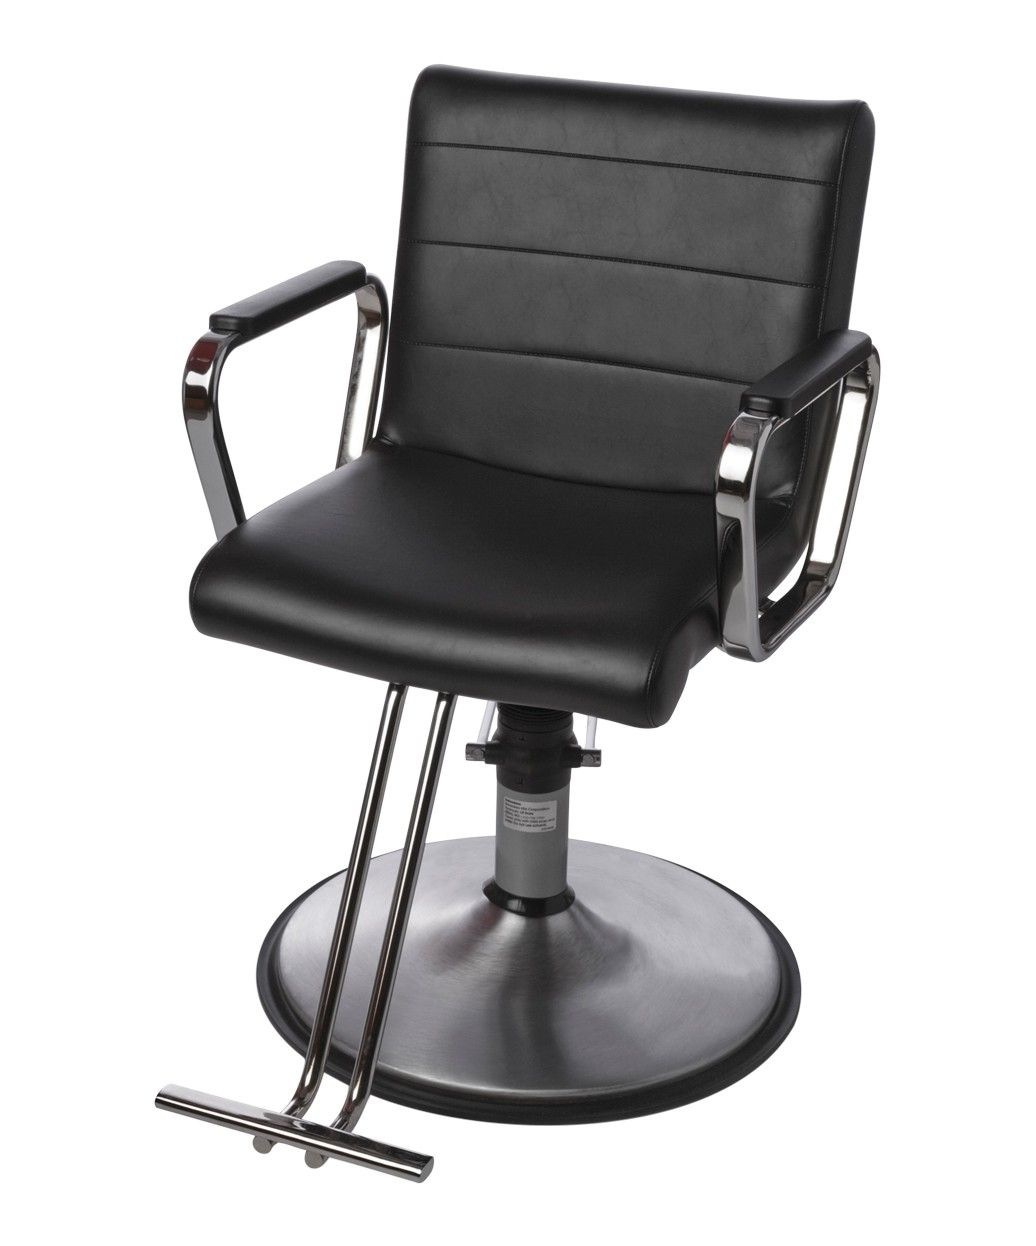 Belvedere Na12 Arrojo Styling Chair Salon Styling Chairs Chair Style Barber Chair For Sale